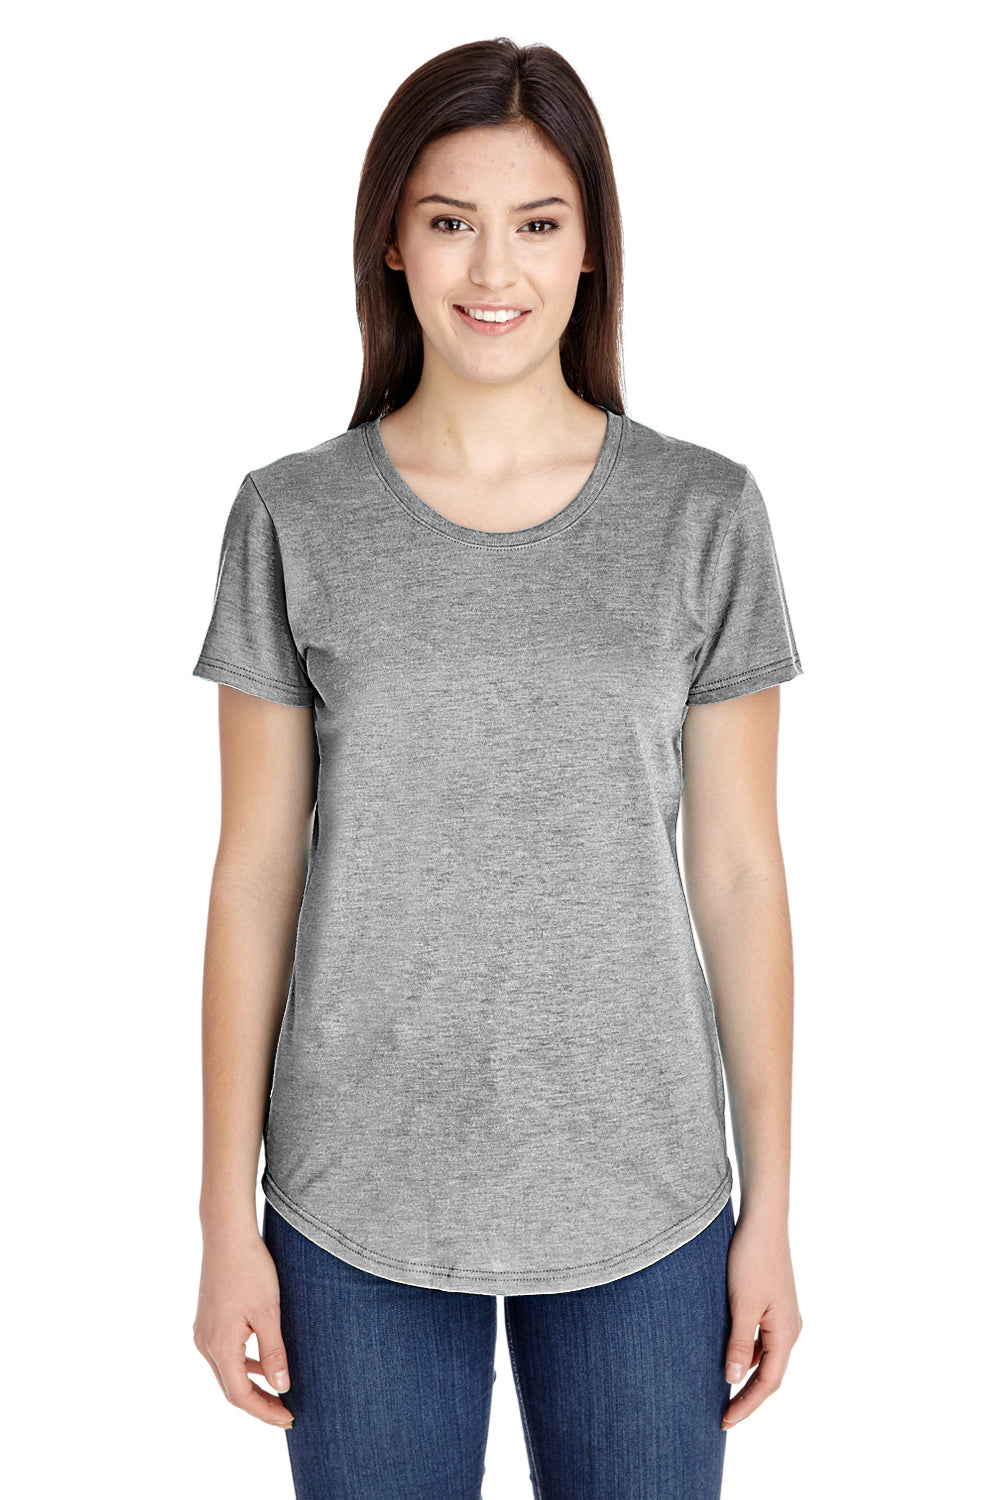 Anvil 6750L Womens Short Sleeve Crewneck T-Shirt Heather Grey Front